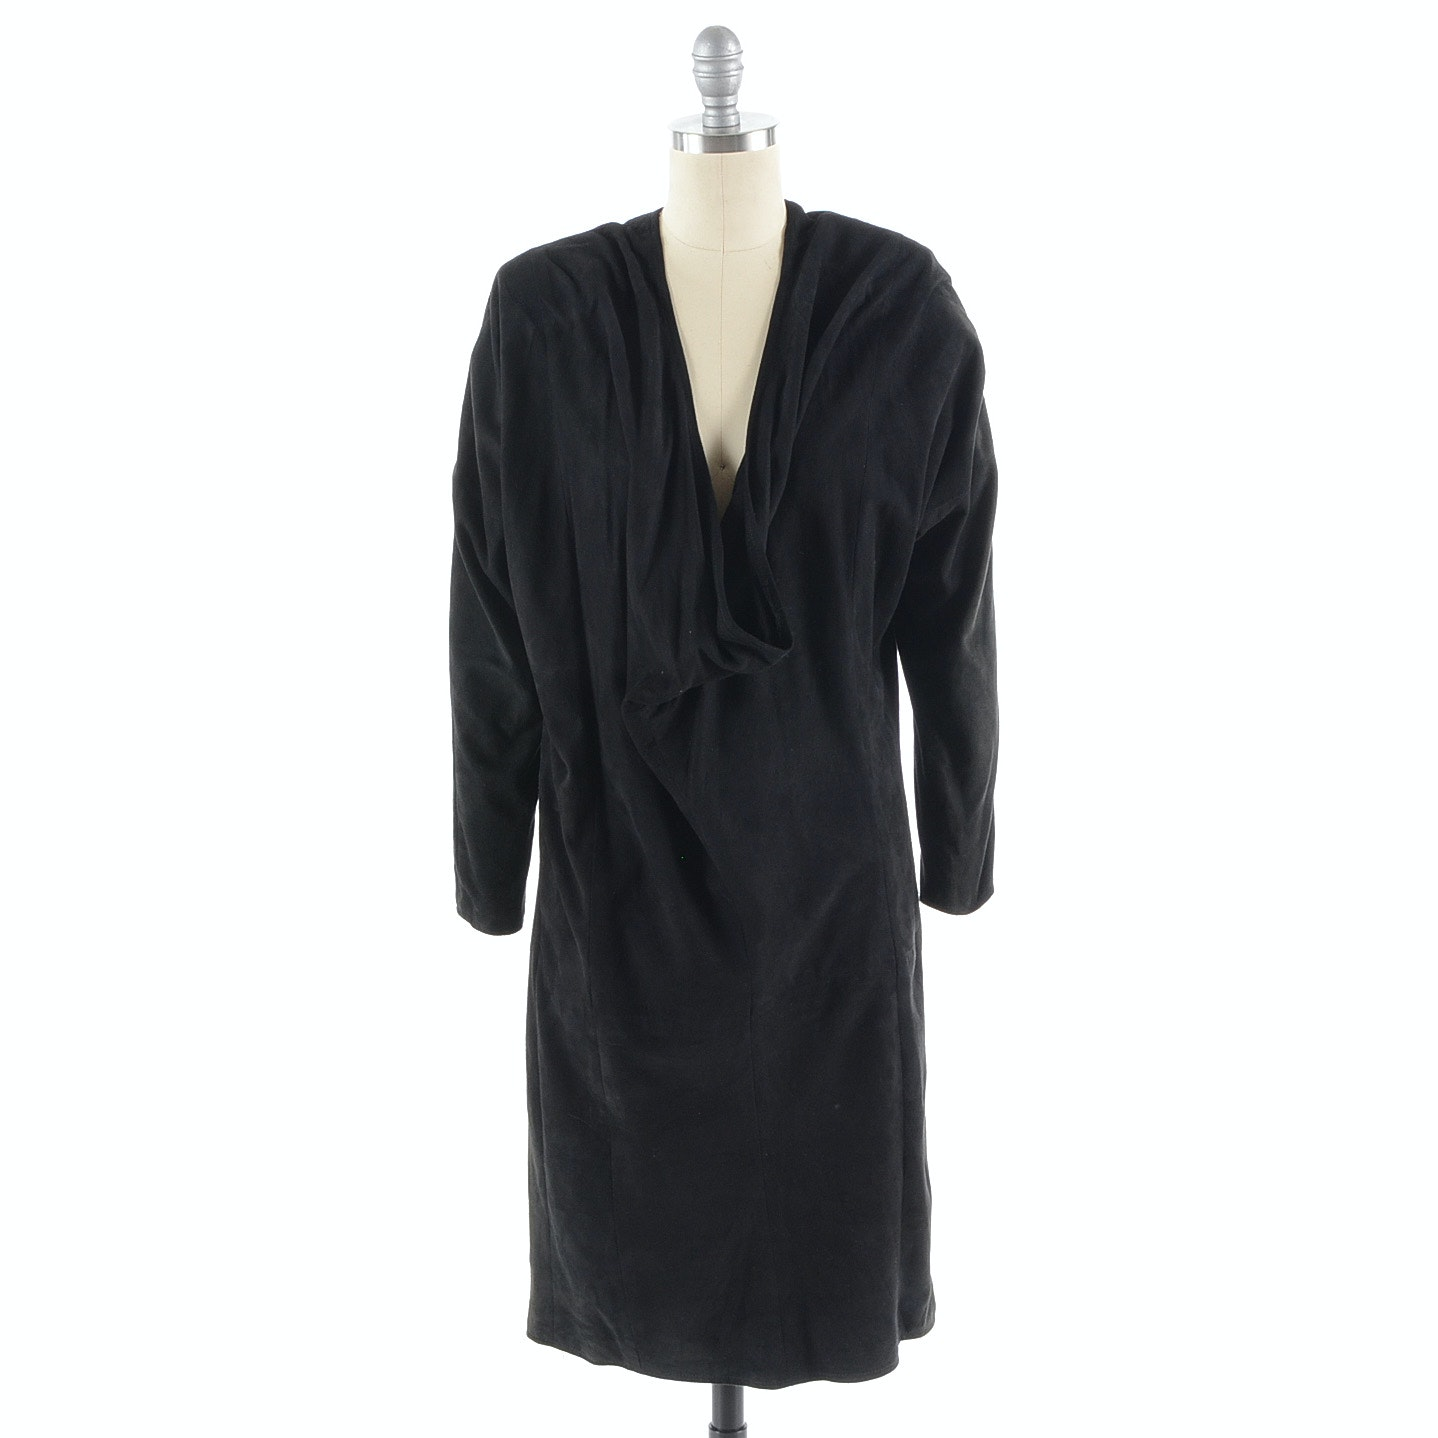 1980s Maxima Black Suede Cocktail Dress with Plunging Neckline